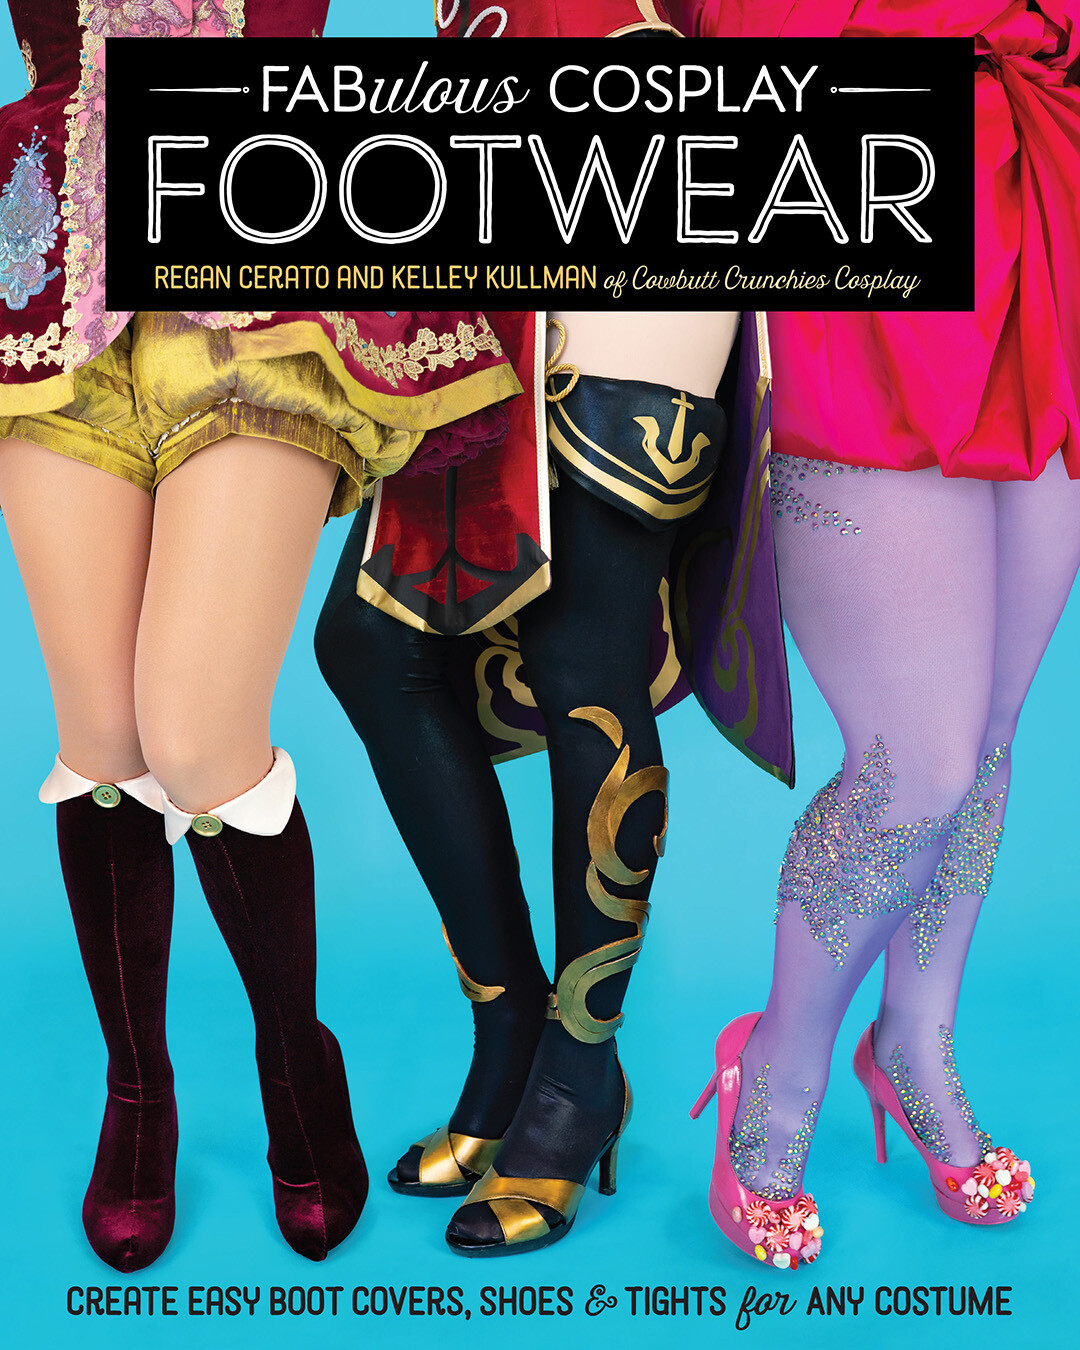 Fabulous Cosplay Footwear (1 free print included through mid-Oct!)